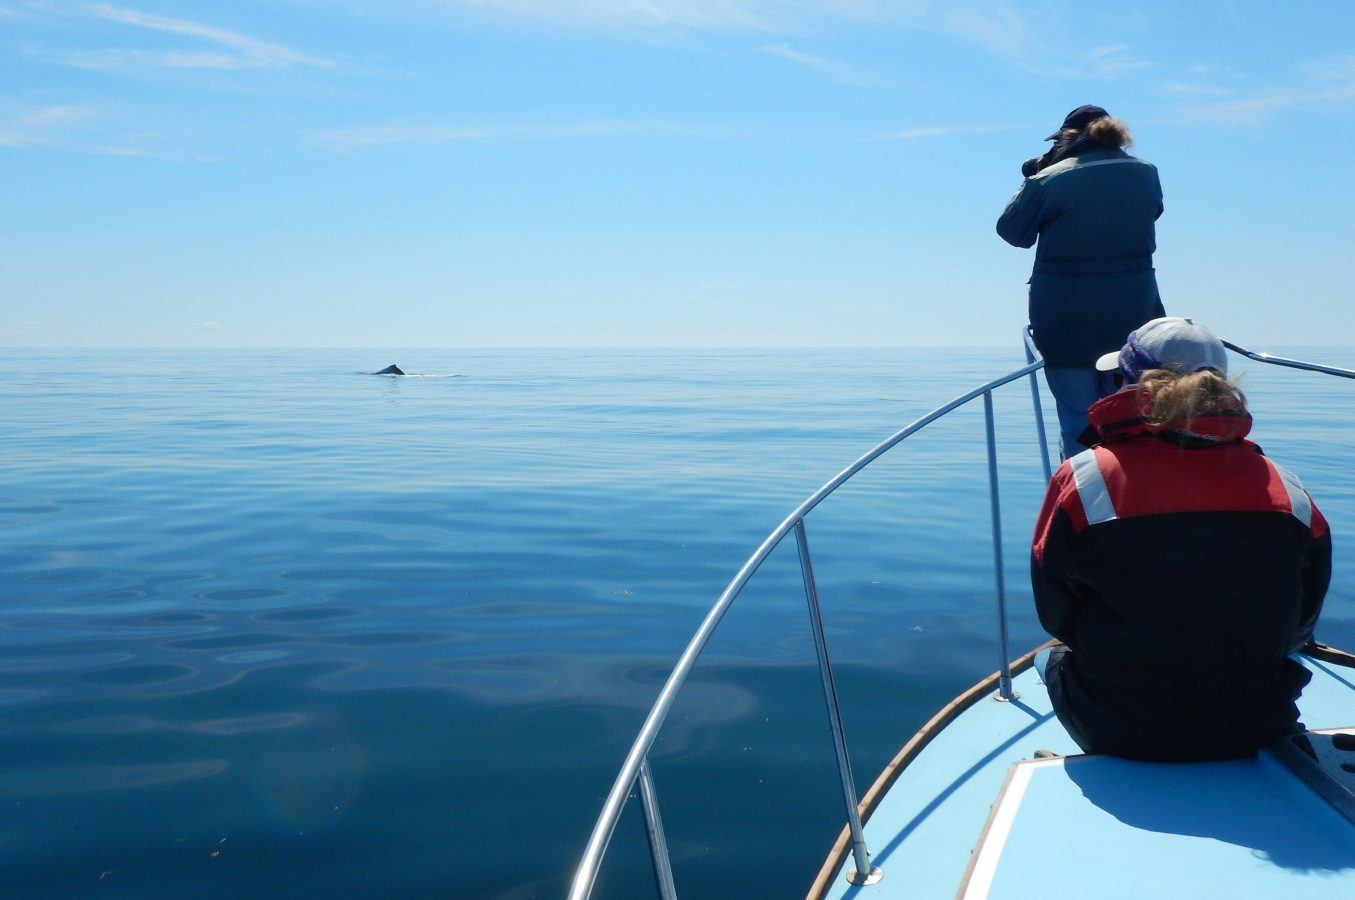 Photographing a humpback whale